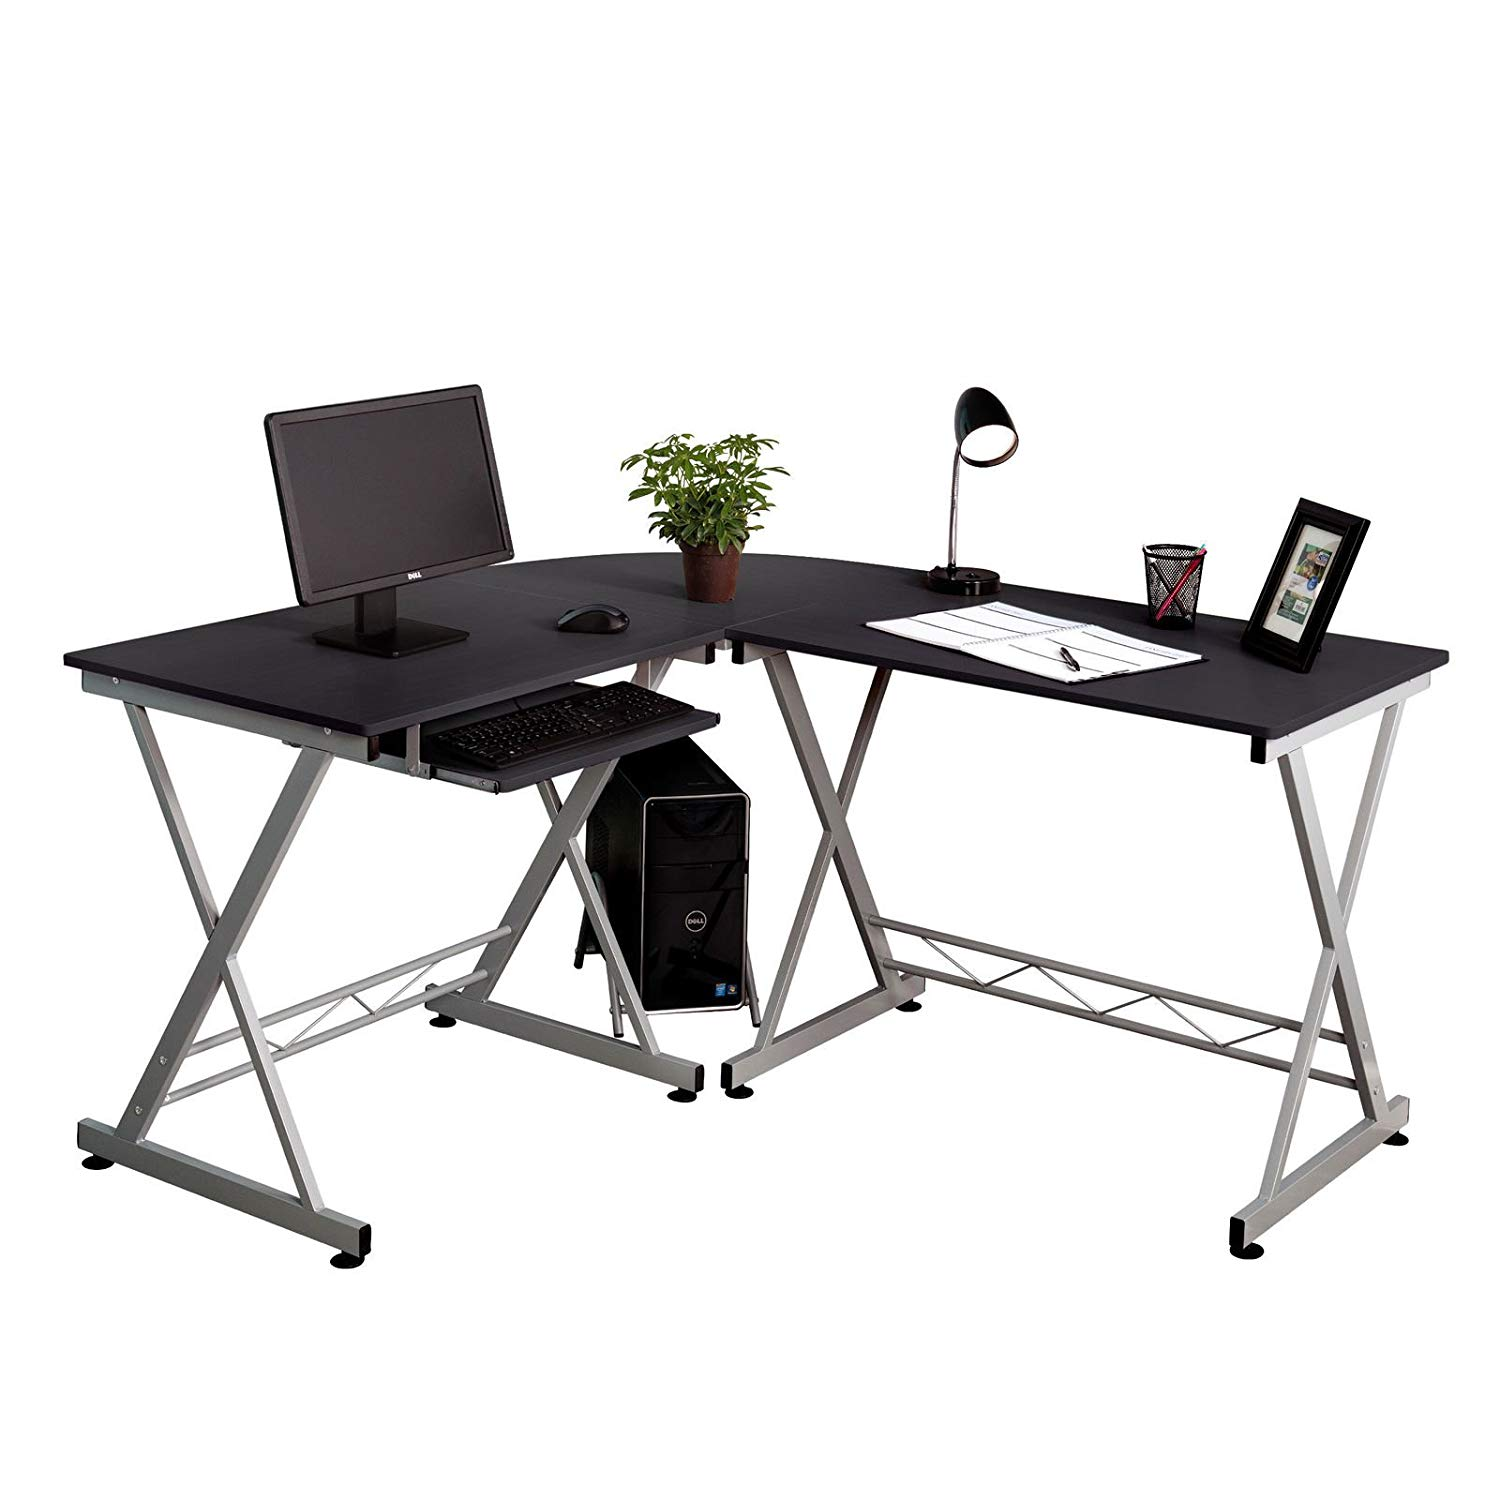 Cypressshop Cornor Computer Desk PC Laptop L-Shaped Table Workstation Home Office Save Space with Sliding Keybord Holder and Computer Case Stand Home and Office Furniture